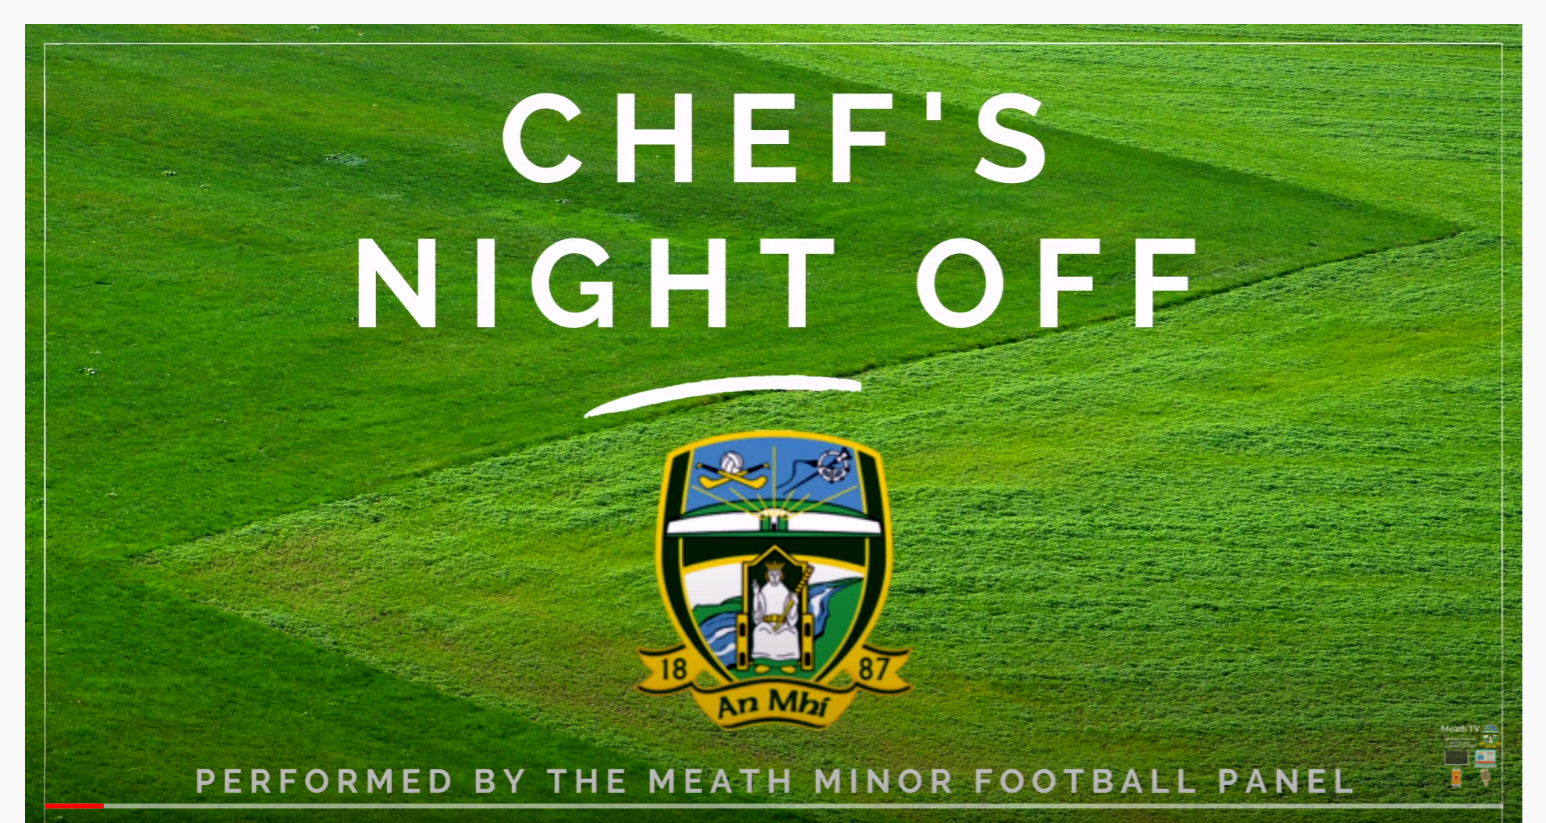 Meath Minor Footballers Cooking Challenge – Chef's Night Off